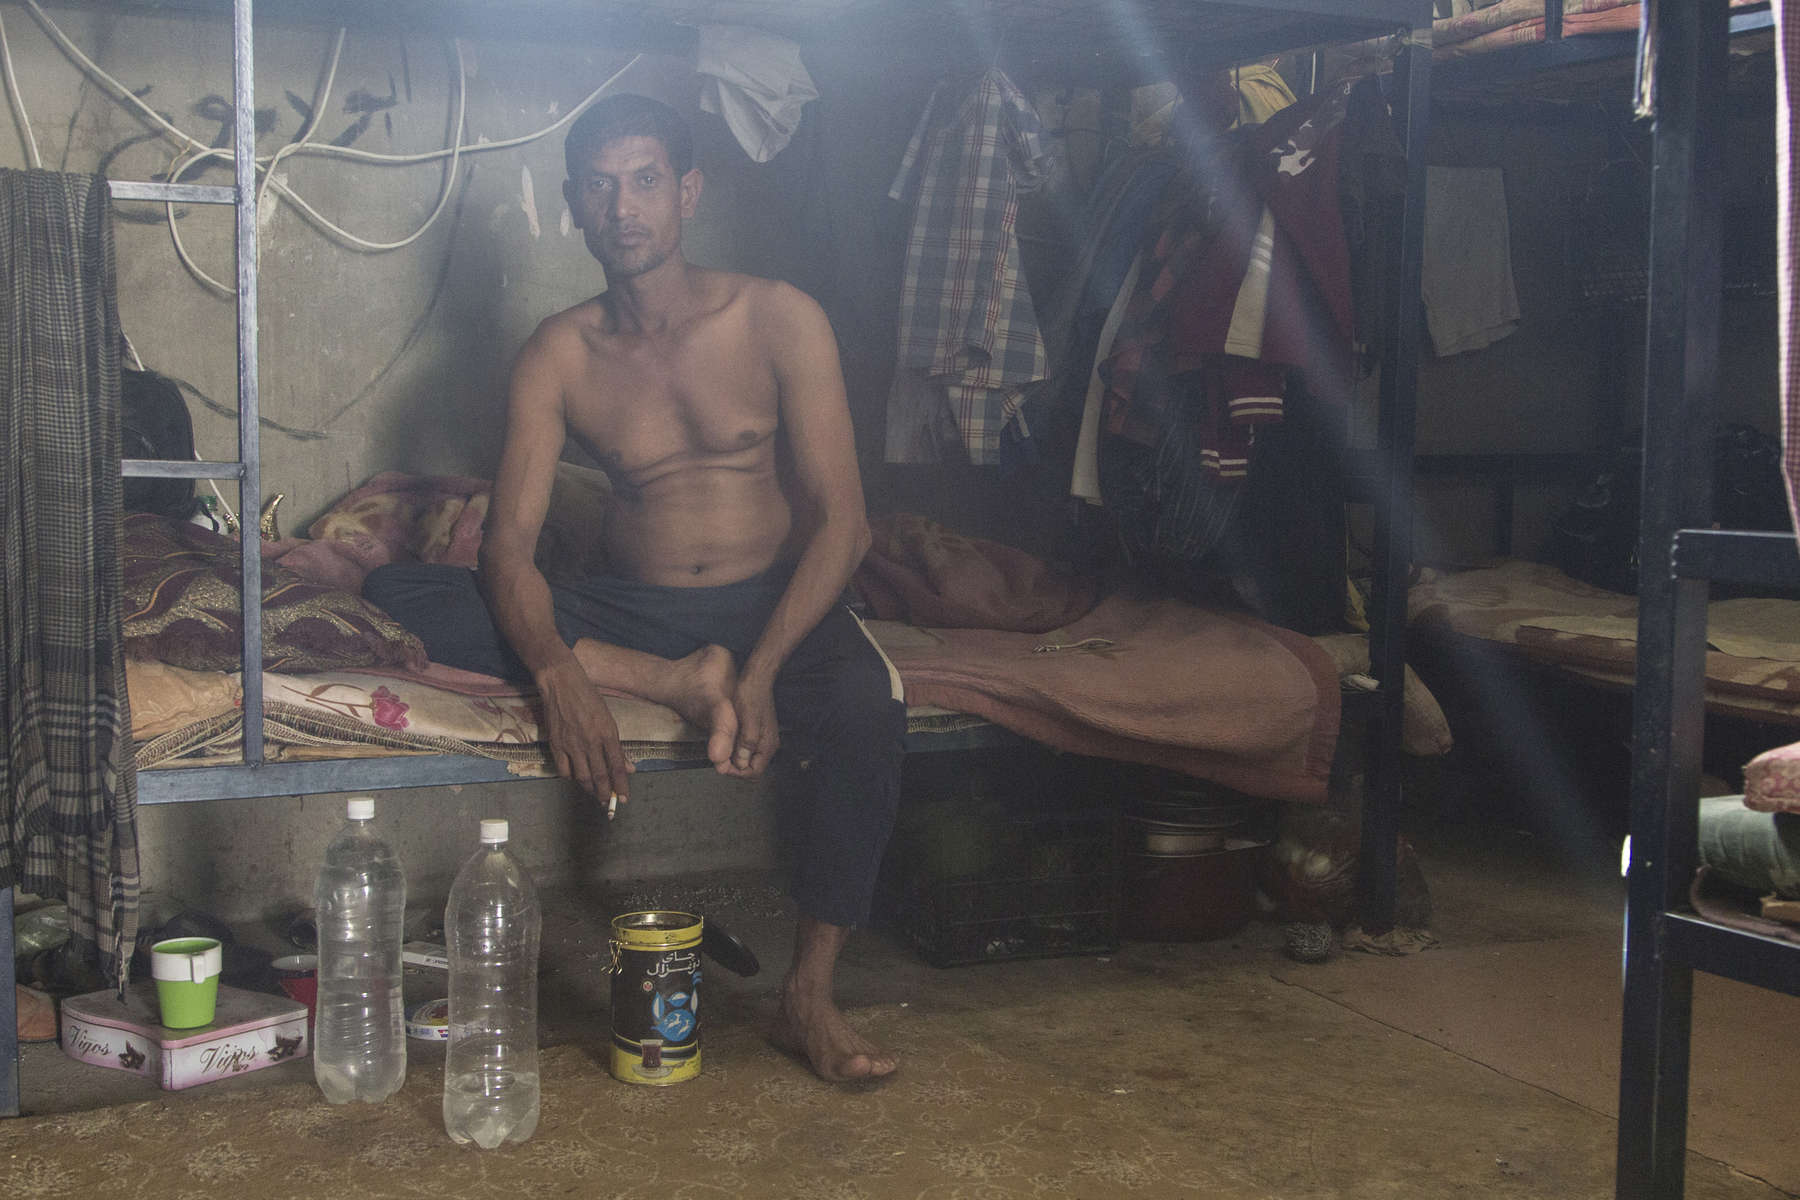 10/10/2014 -- Kirkuk, Iraq -- A Bangladeshi worker on his bed in the shared room where he lives.